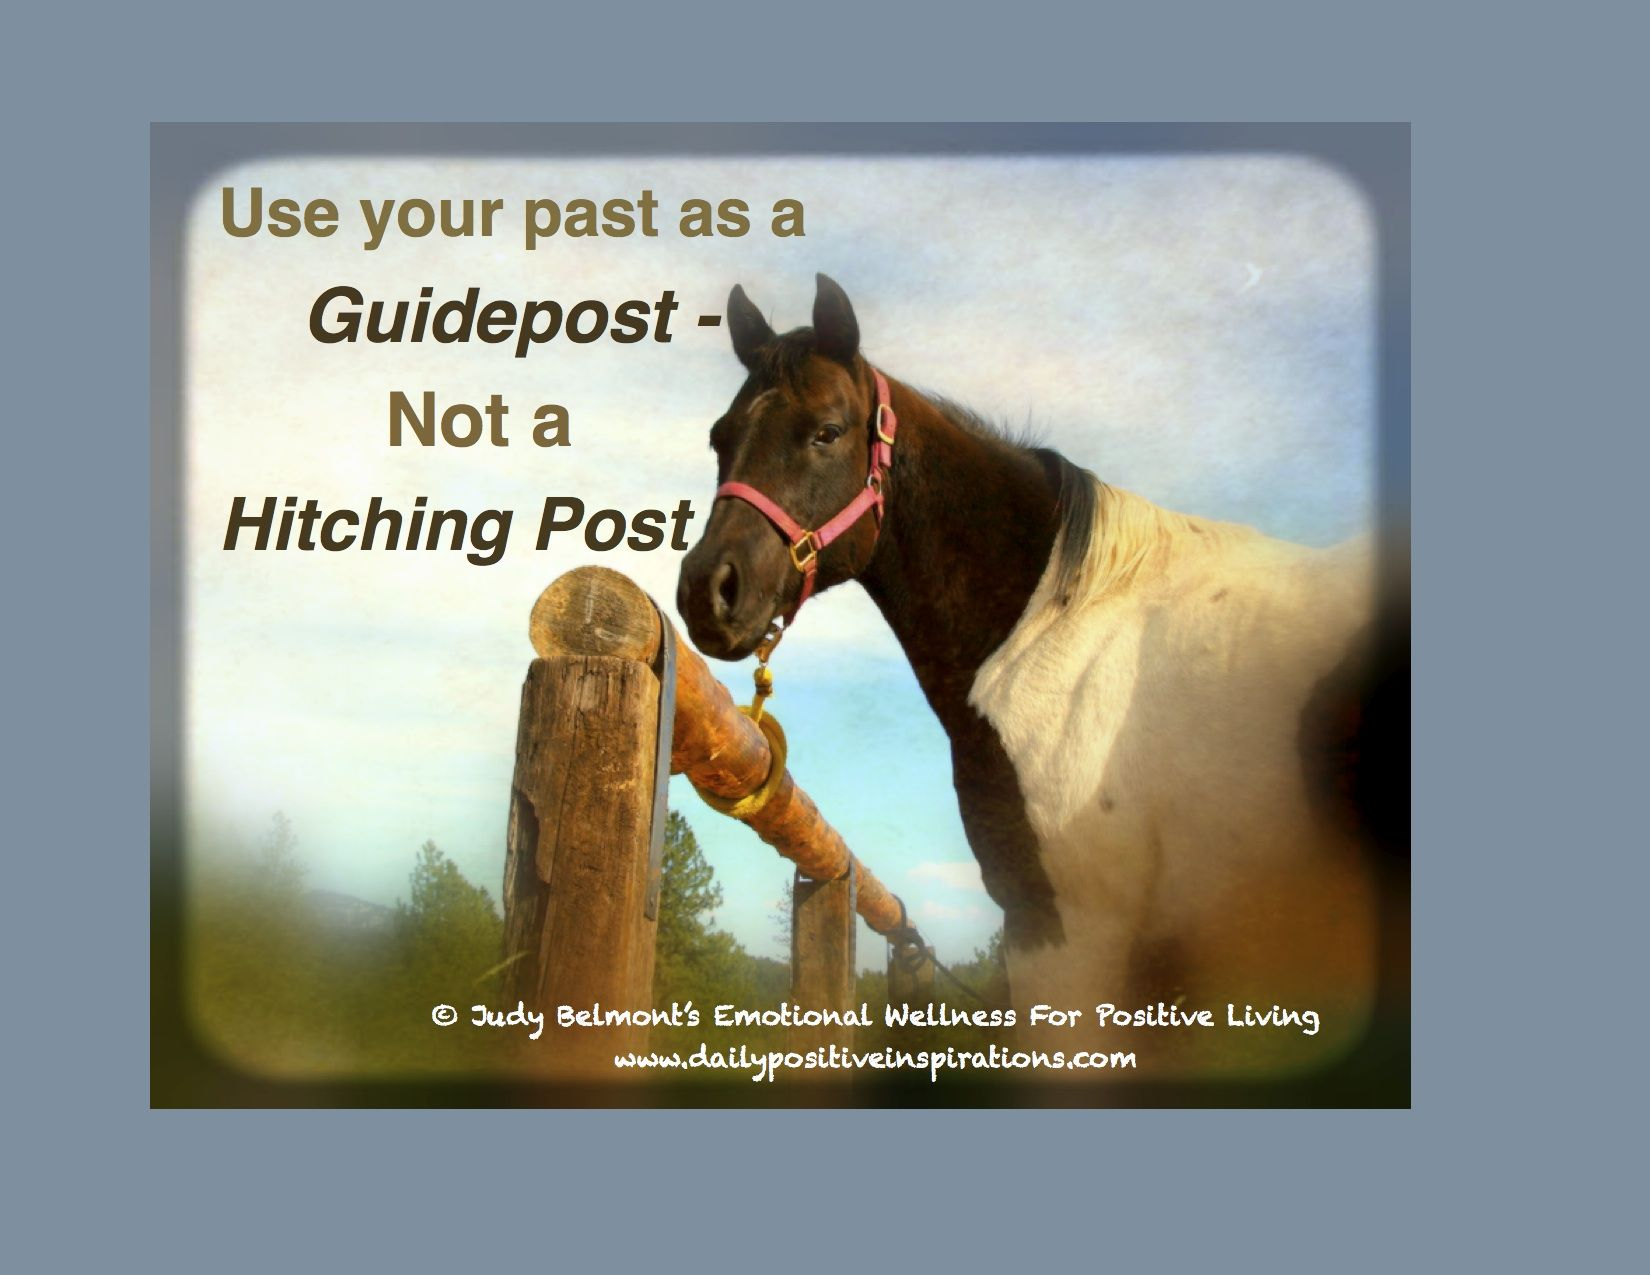 Use your past as a guidepost - not a hitching post